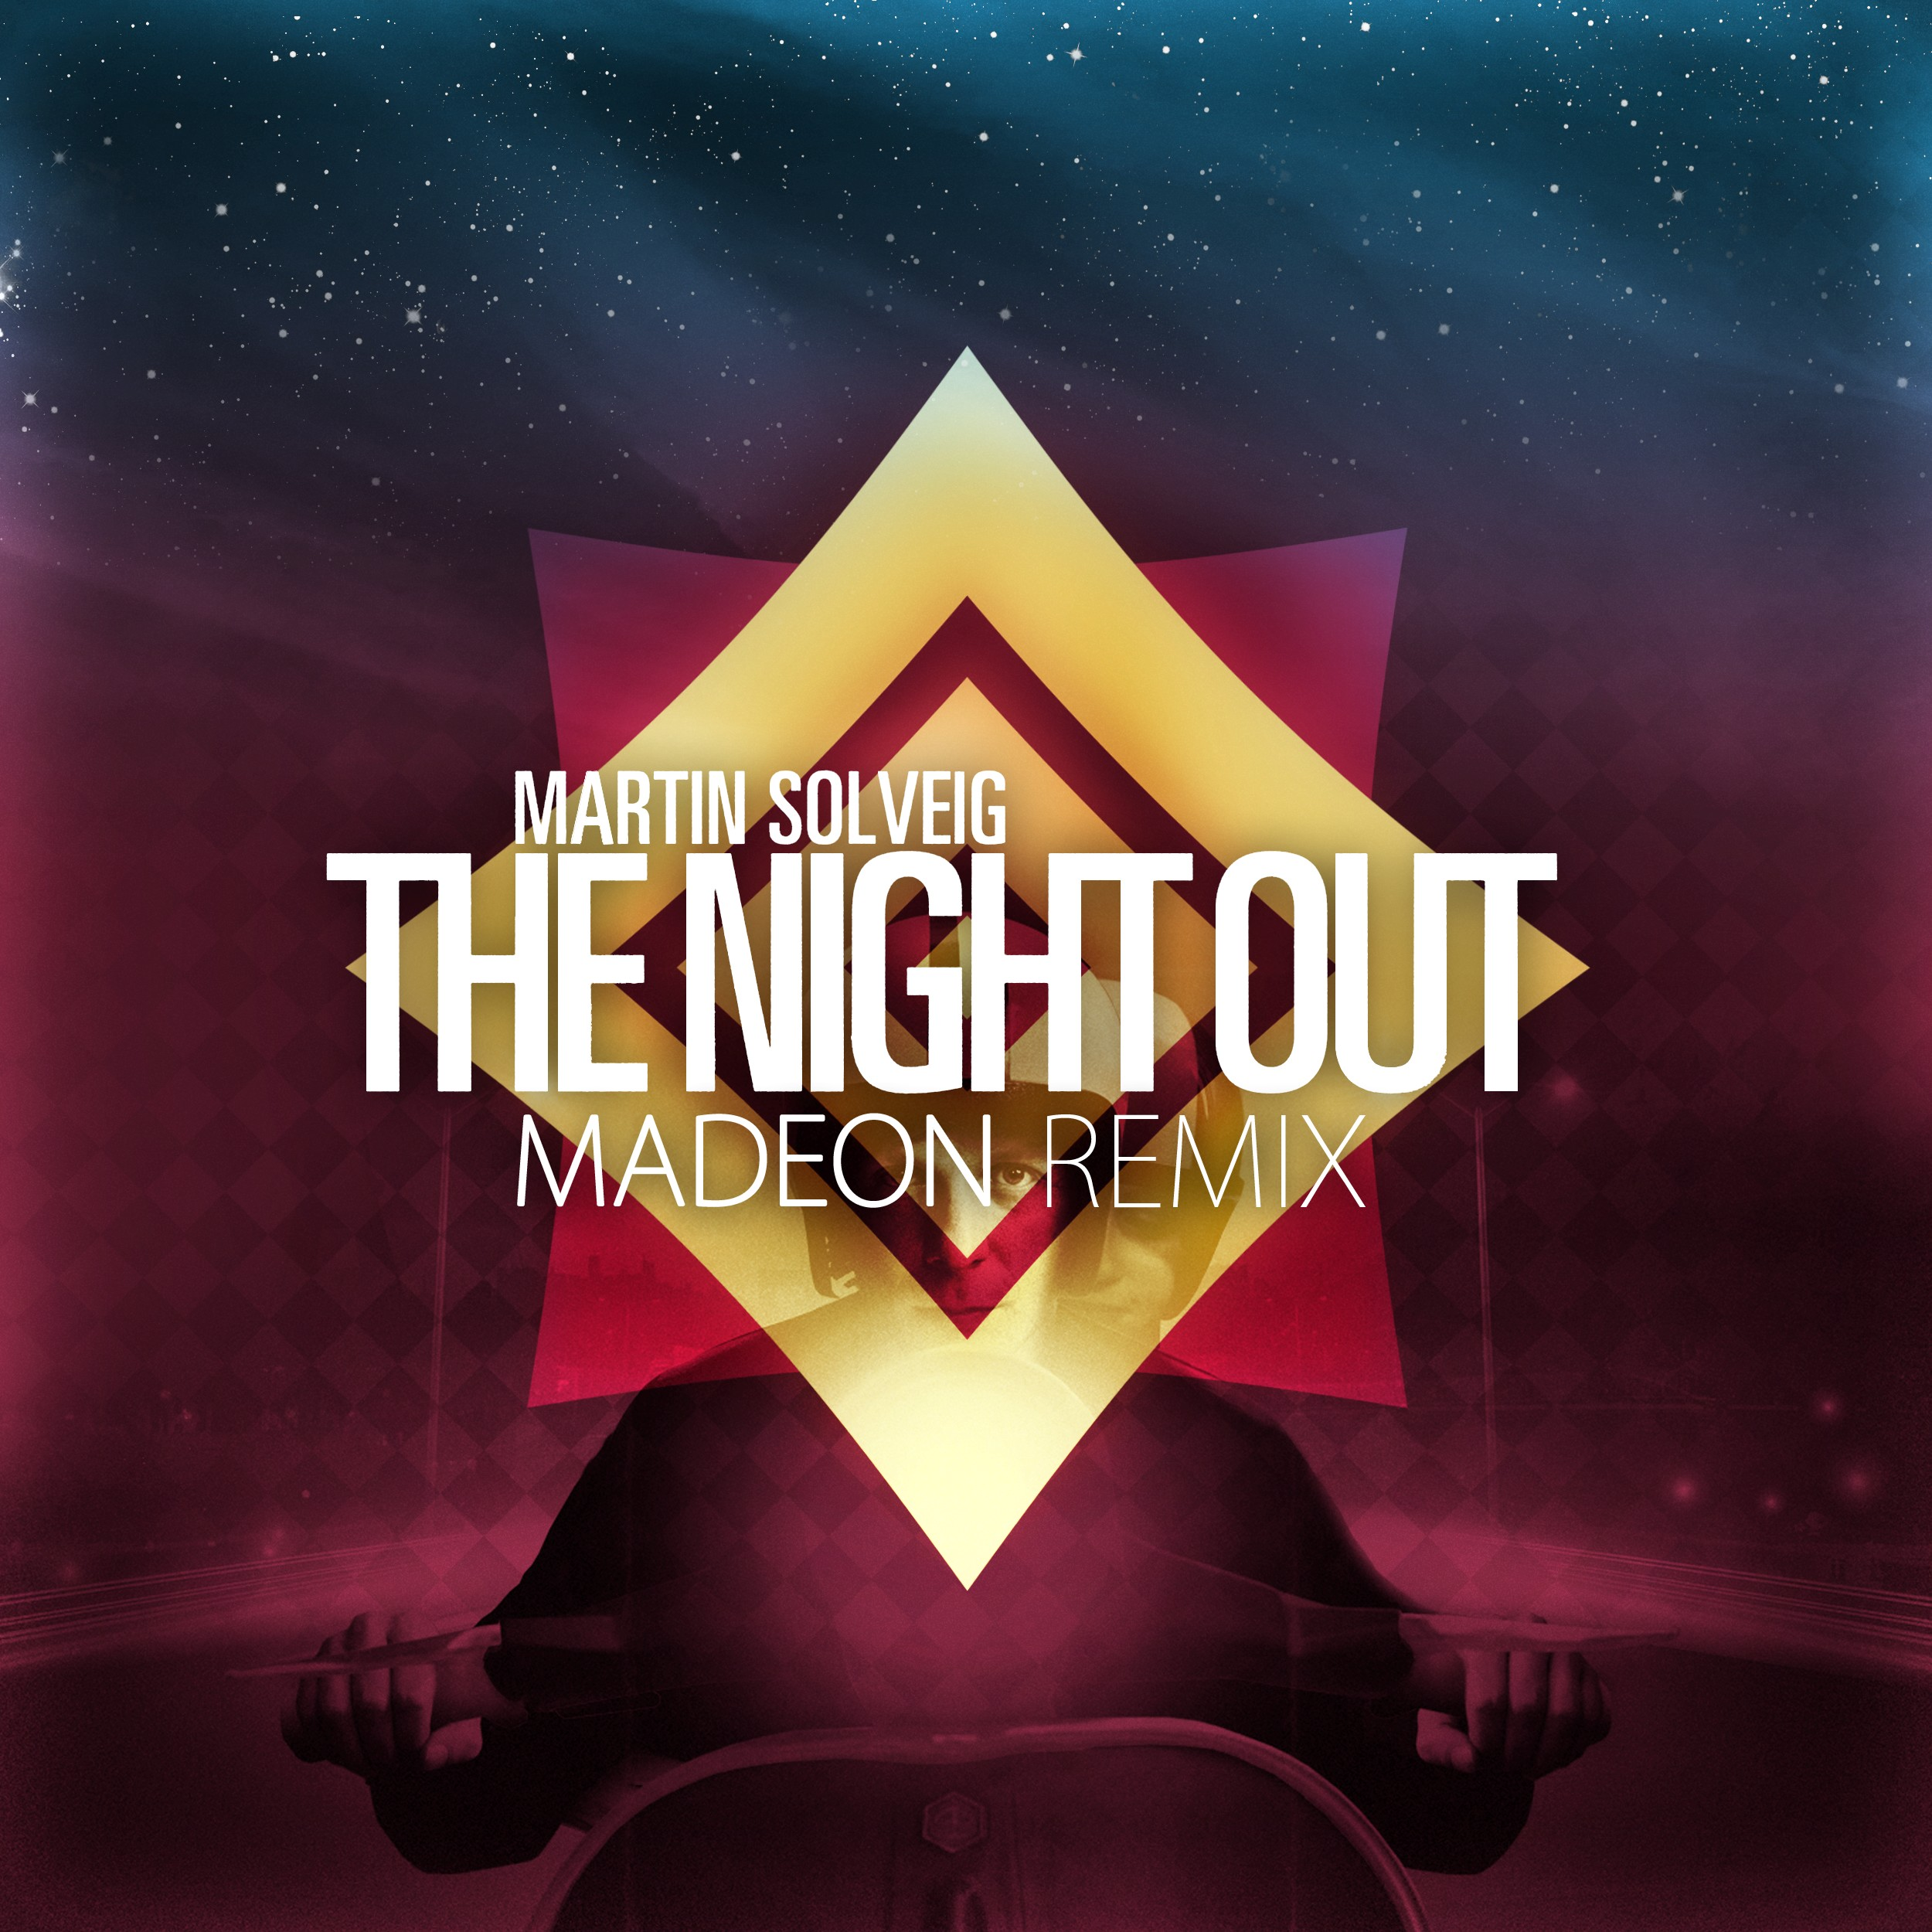 Martin Solveig The Night Out Madeon